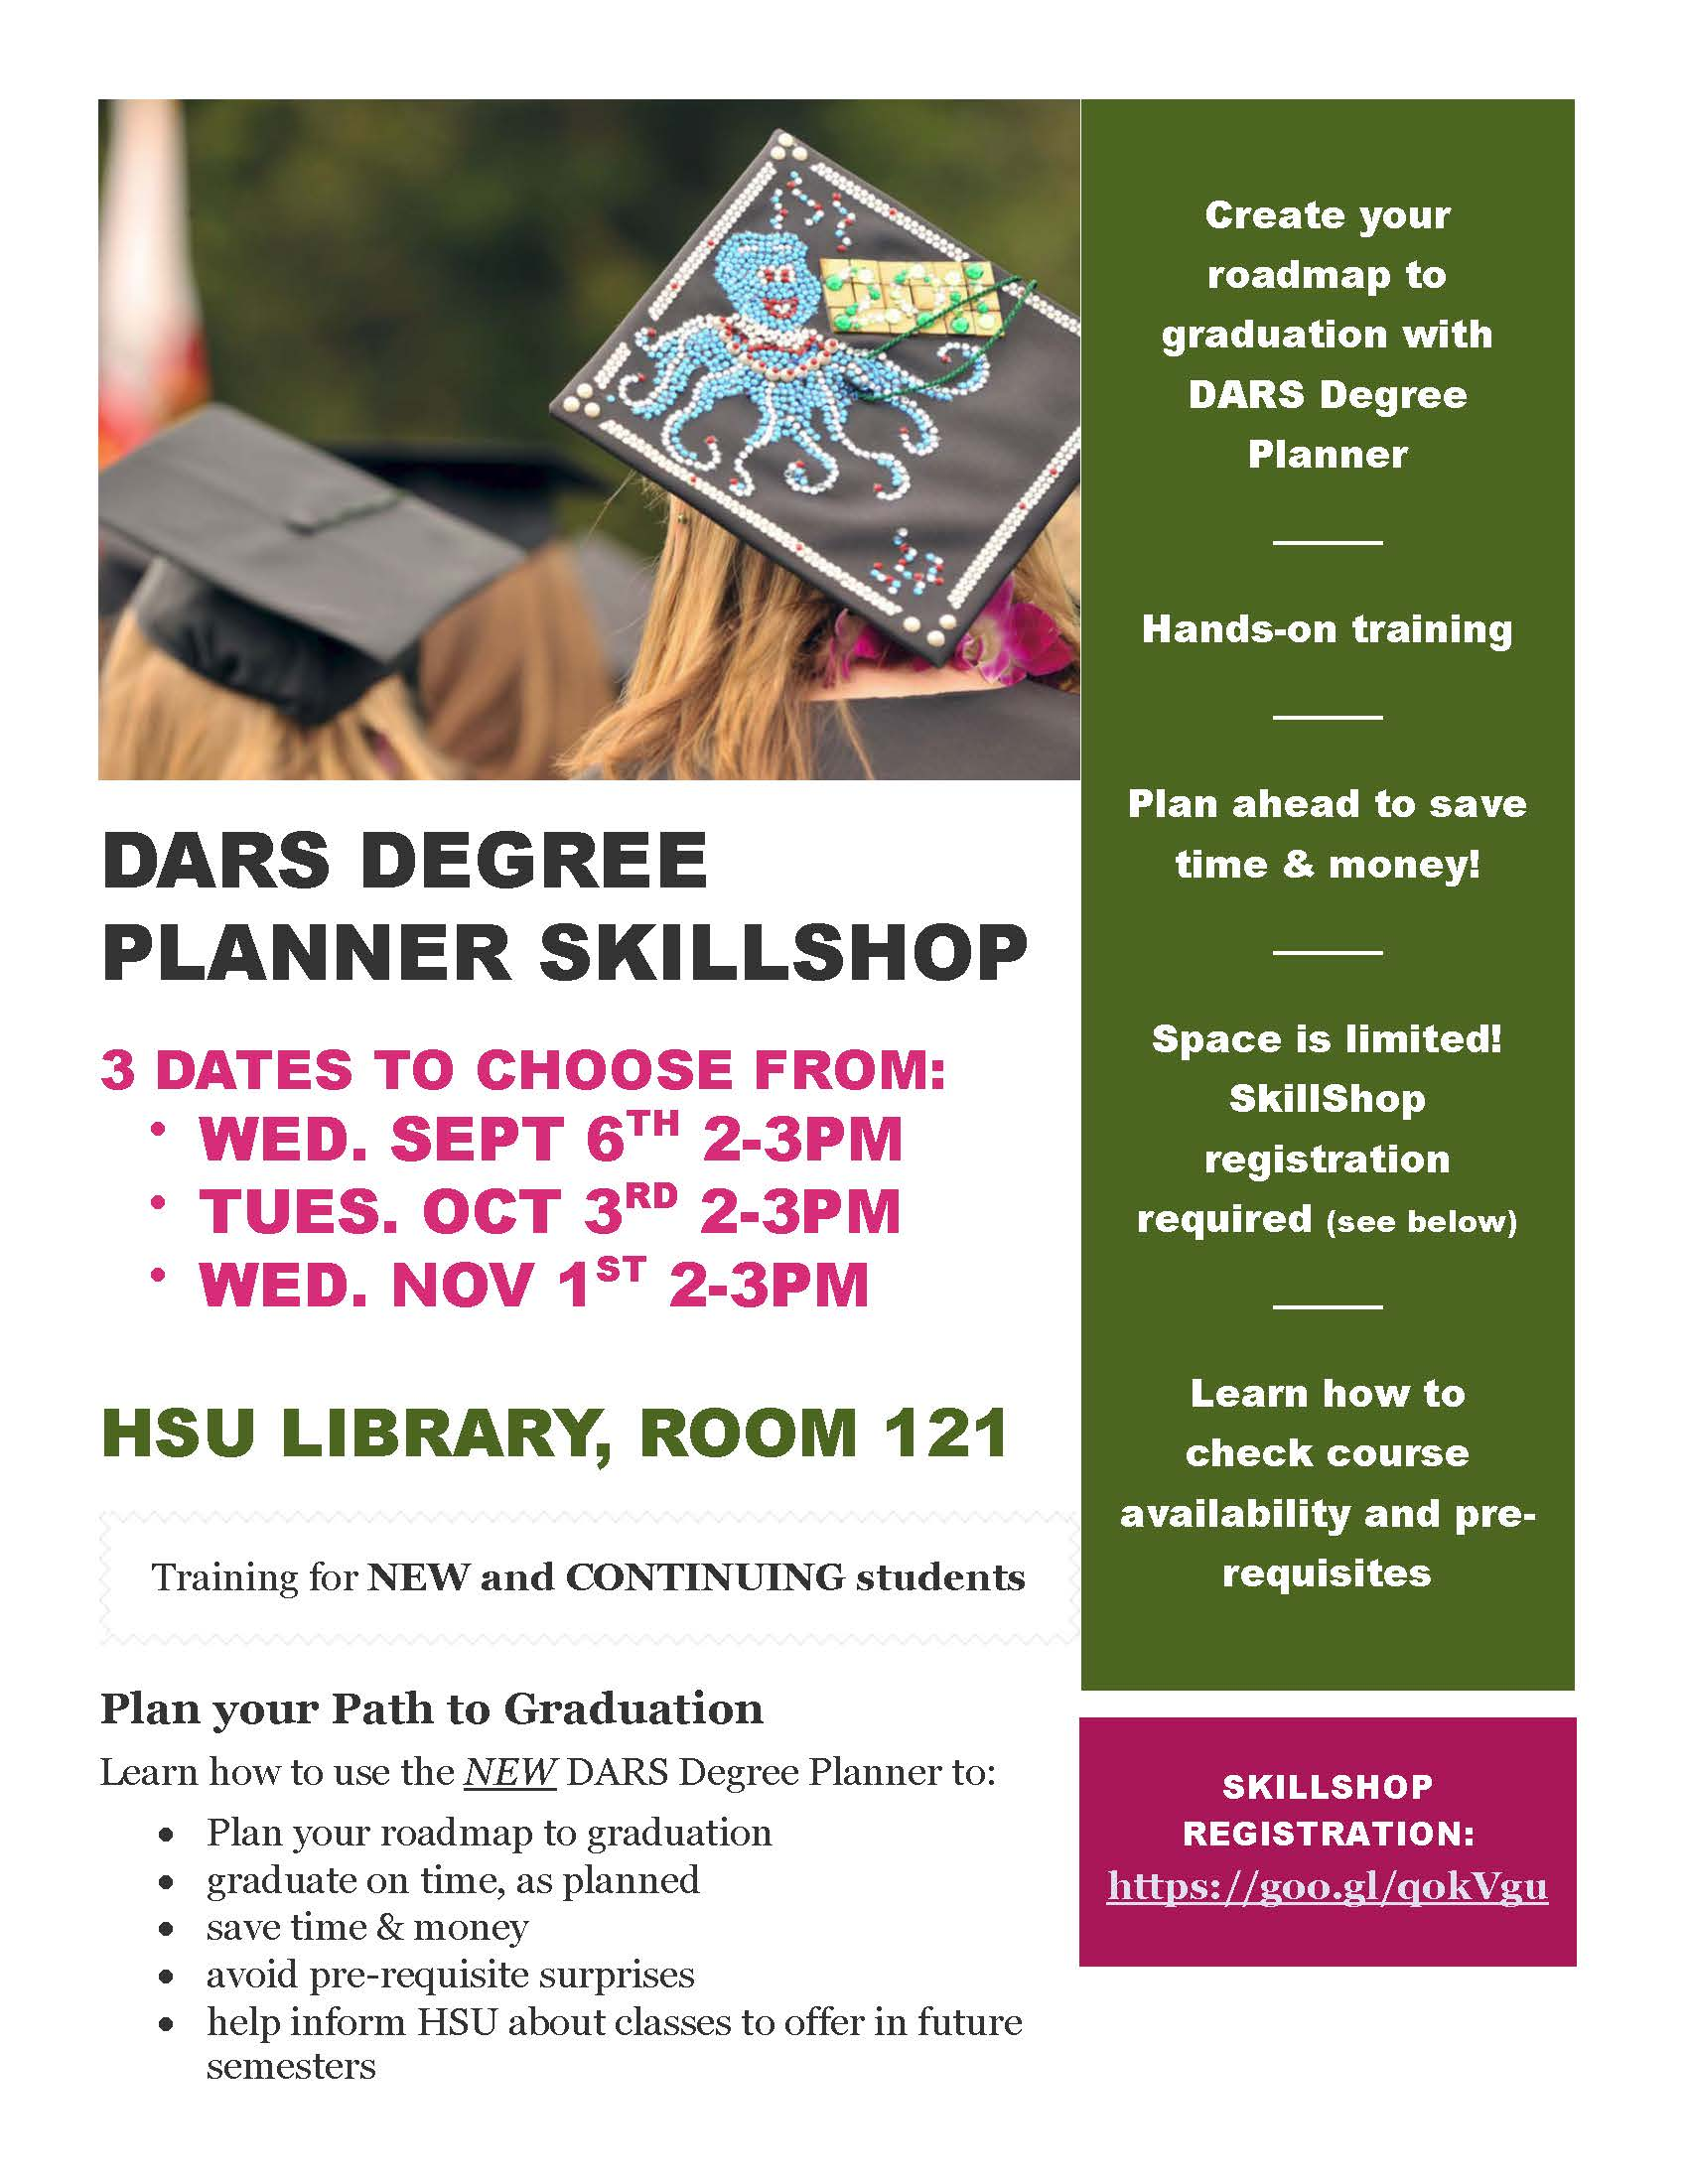 Plan Your Path to Graduation: DARS Degree Planner